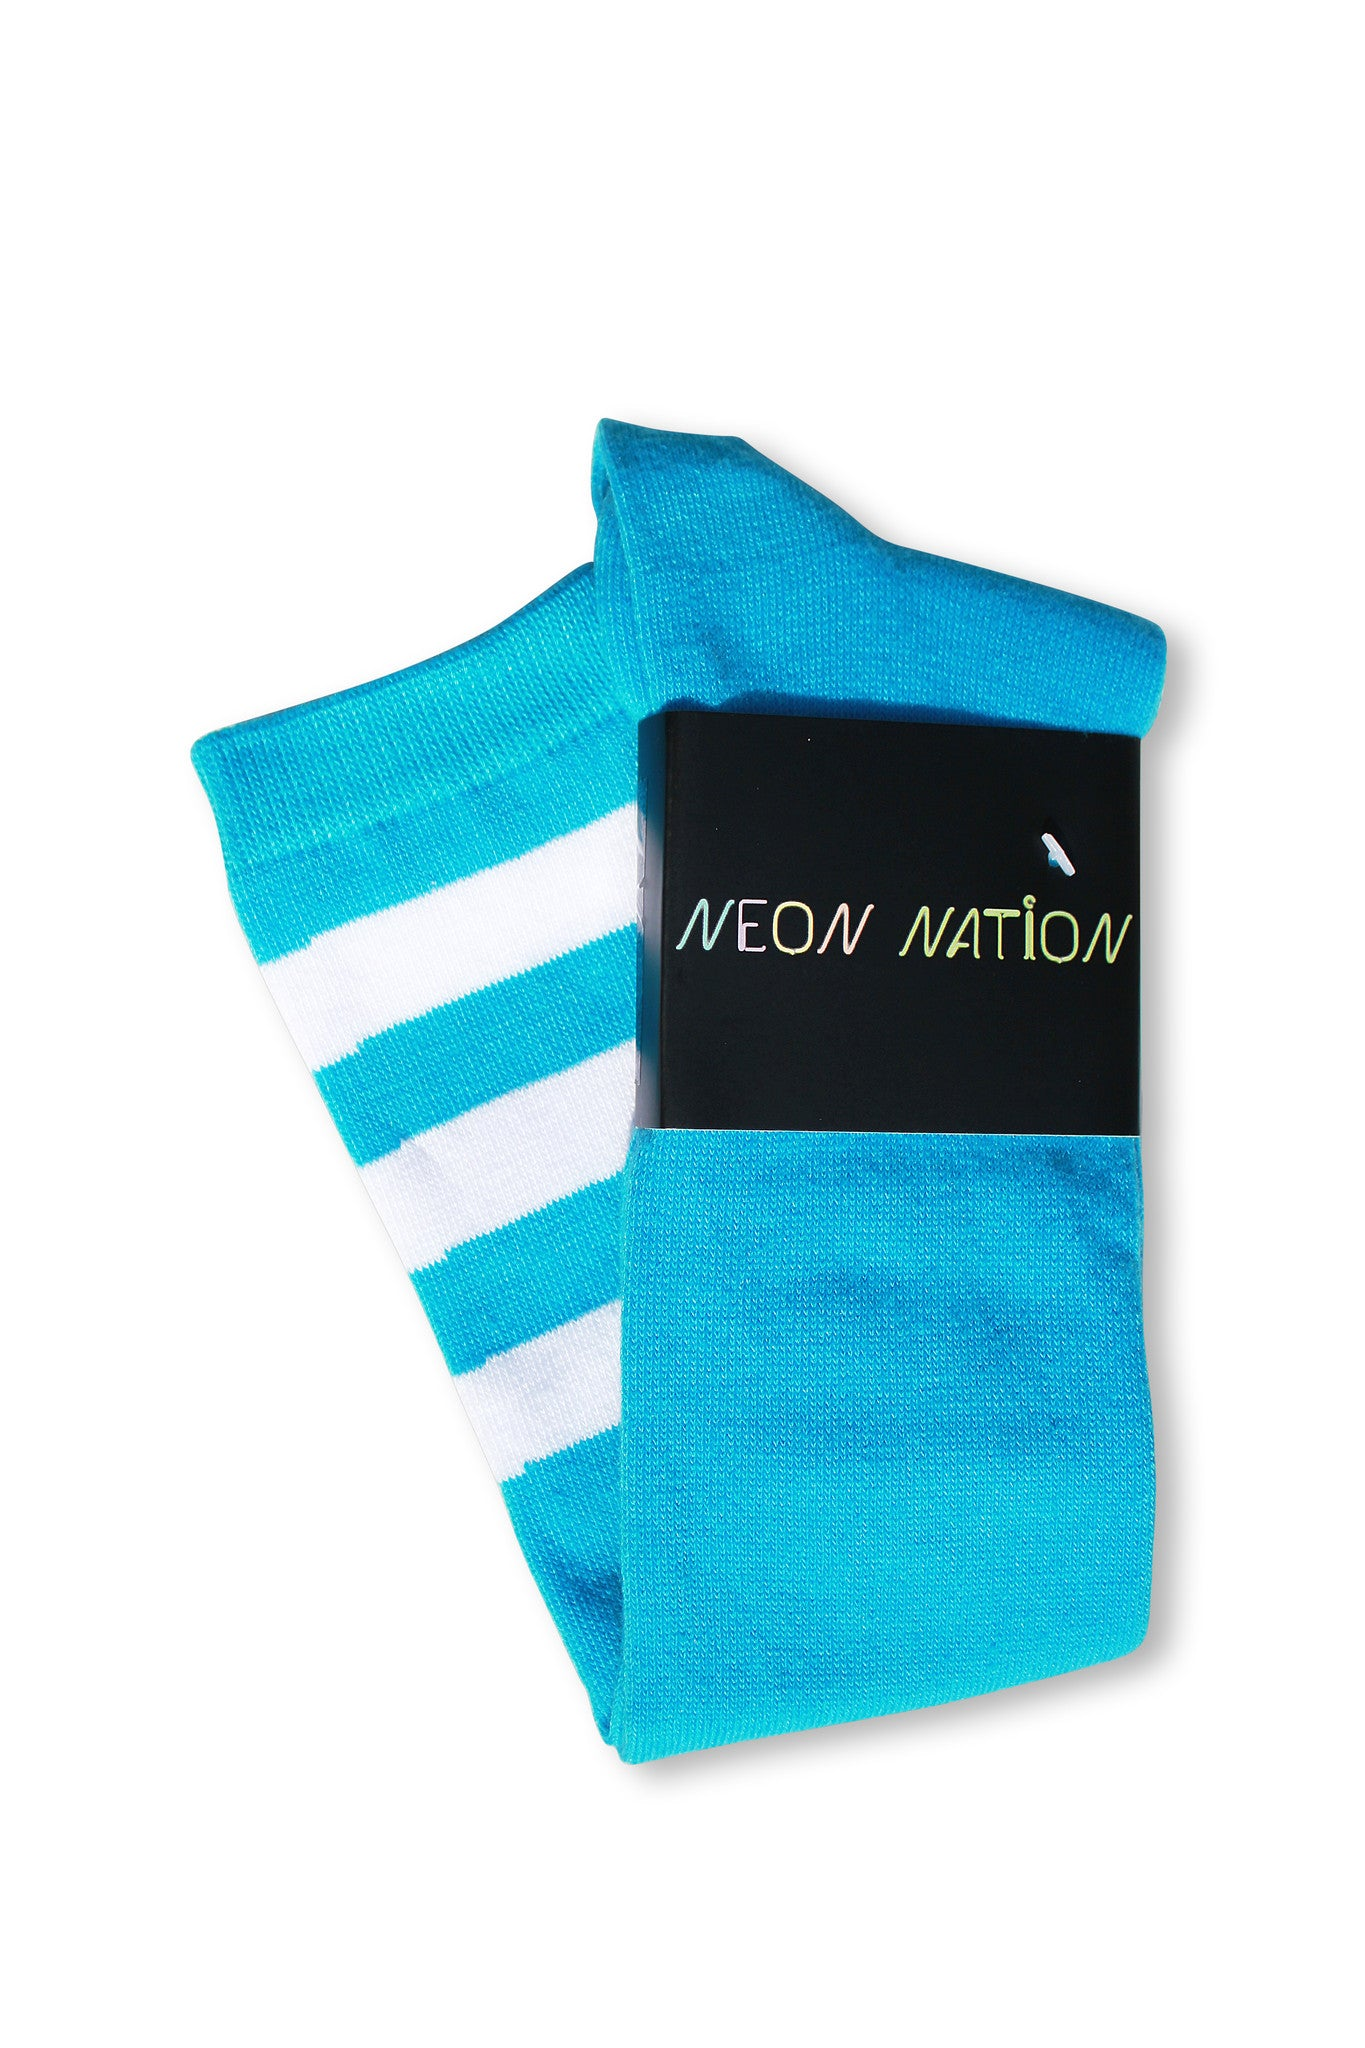 Neon Blue with White Stripes Knee High Sock - Neon Nation